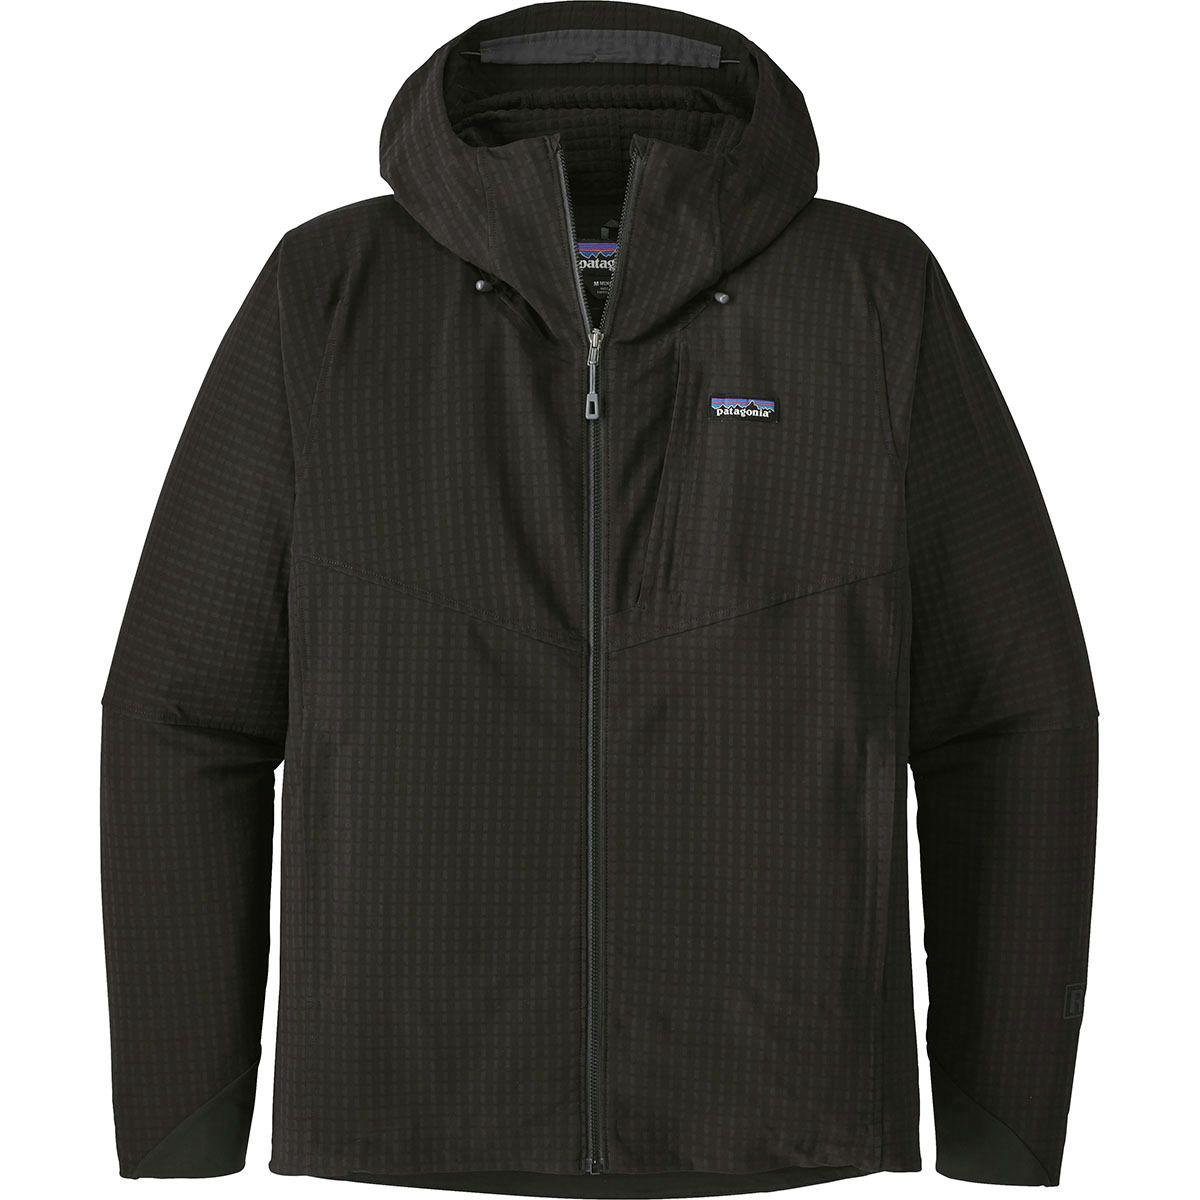 5e0c3122188 Lyst - Patagonia R1 Techface Hooded Fleece Jacket in Black for Men